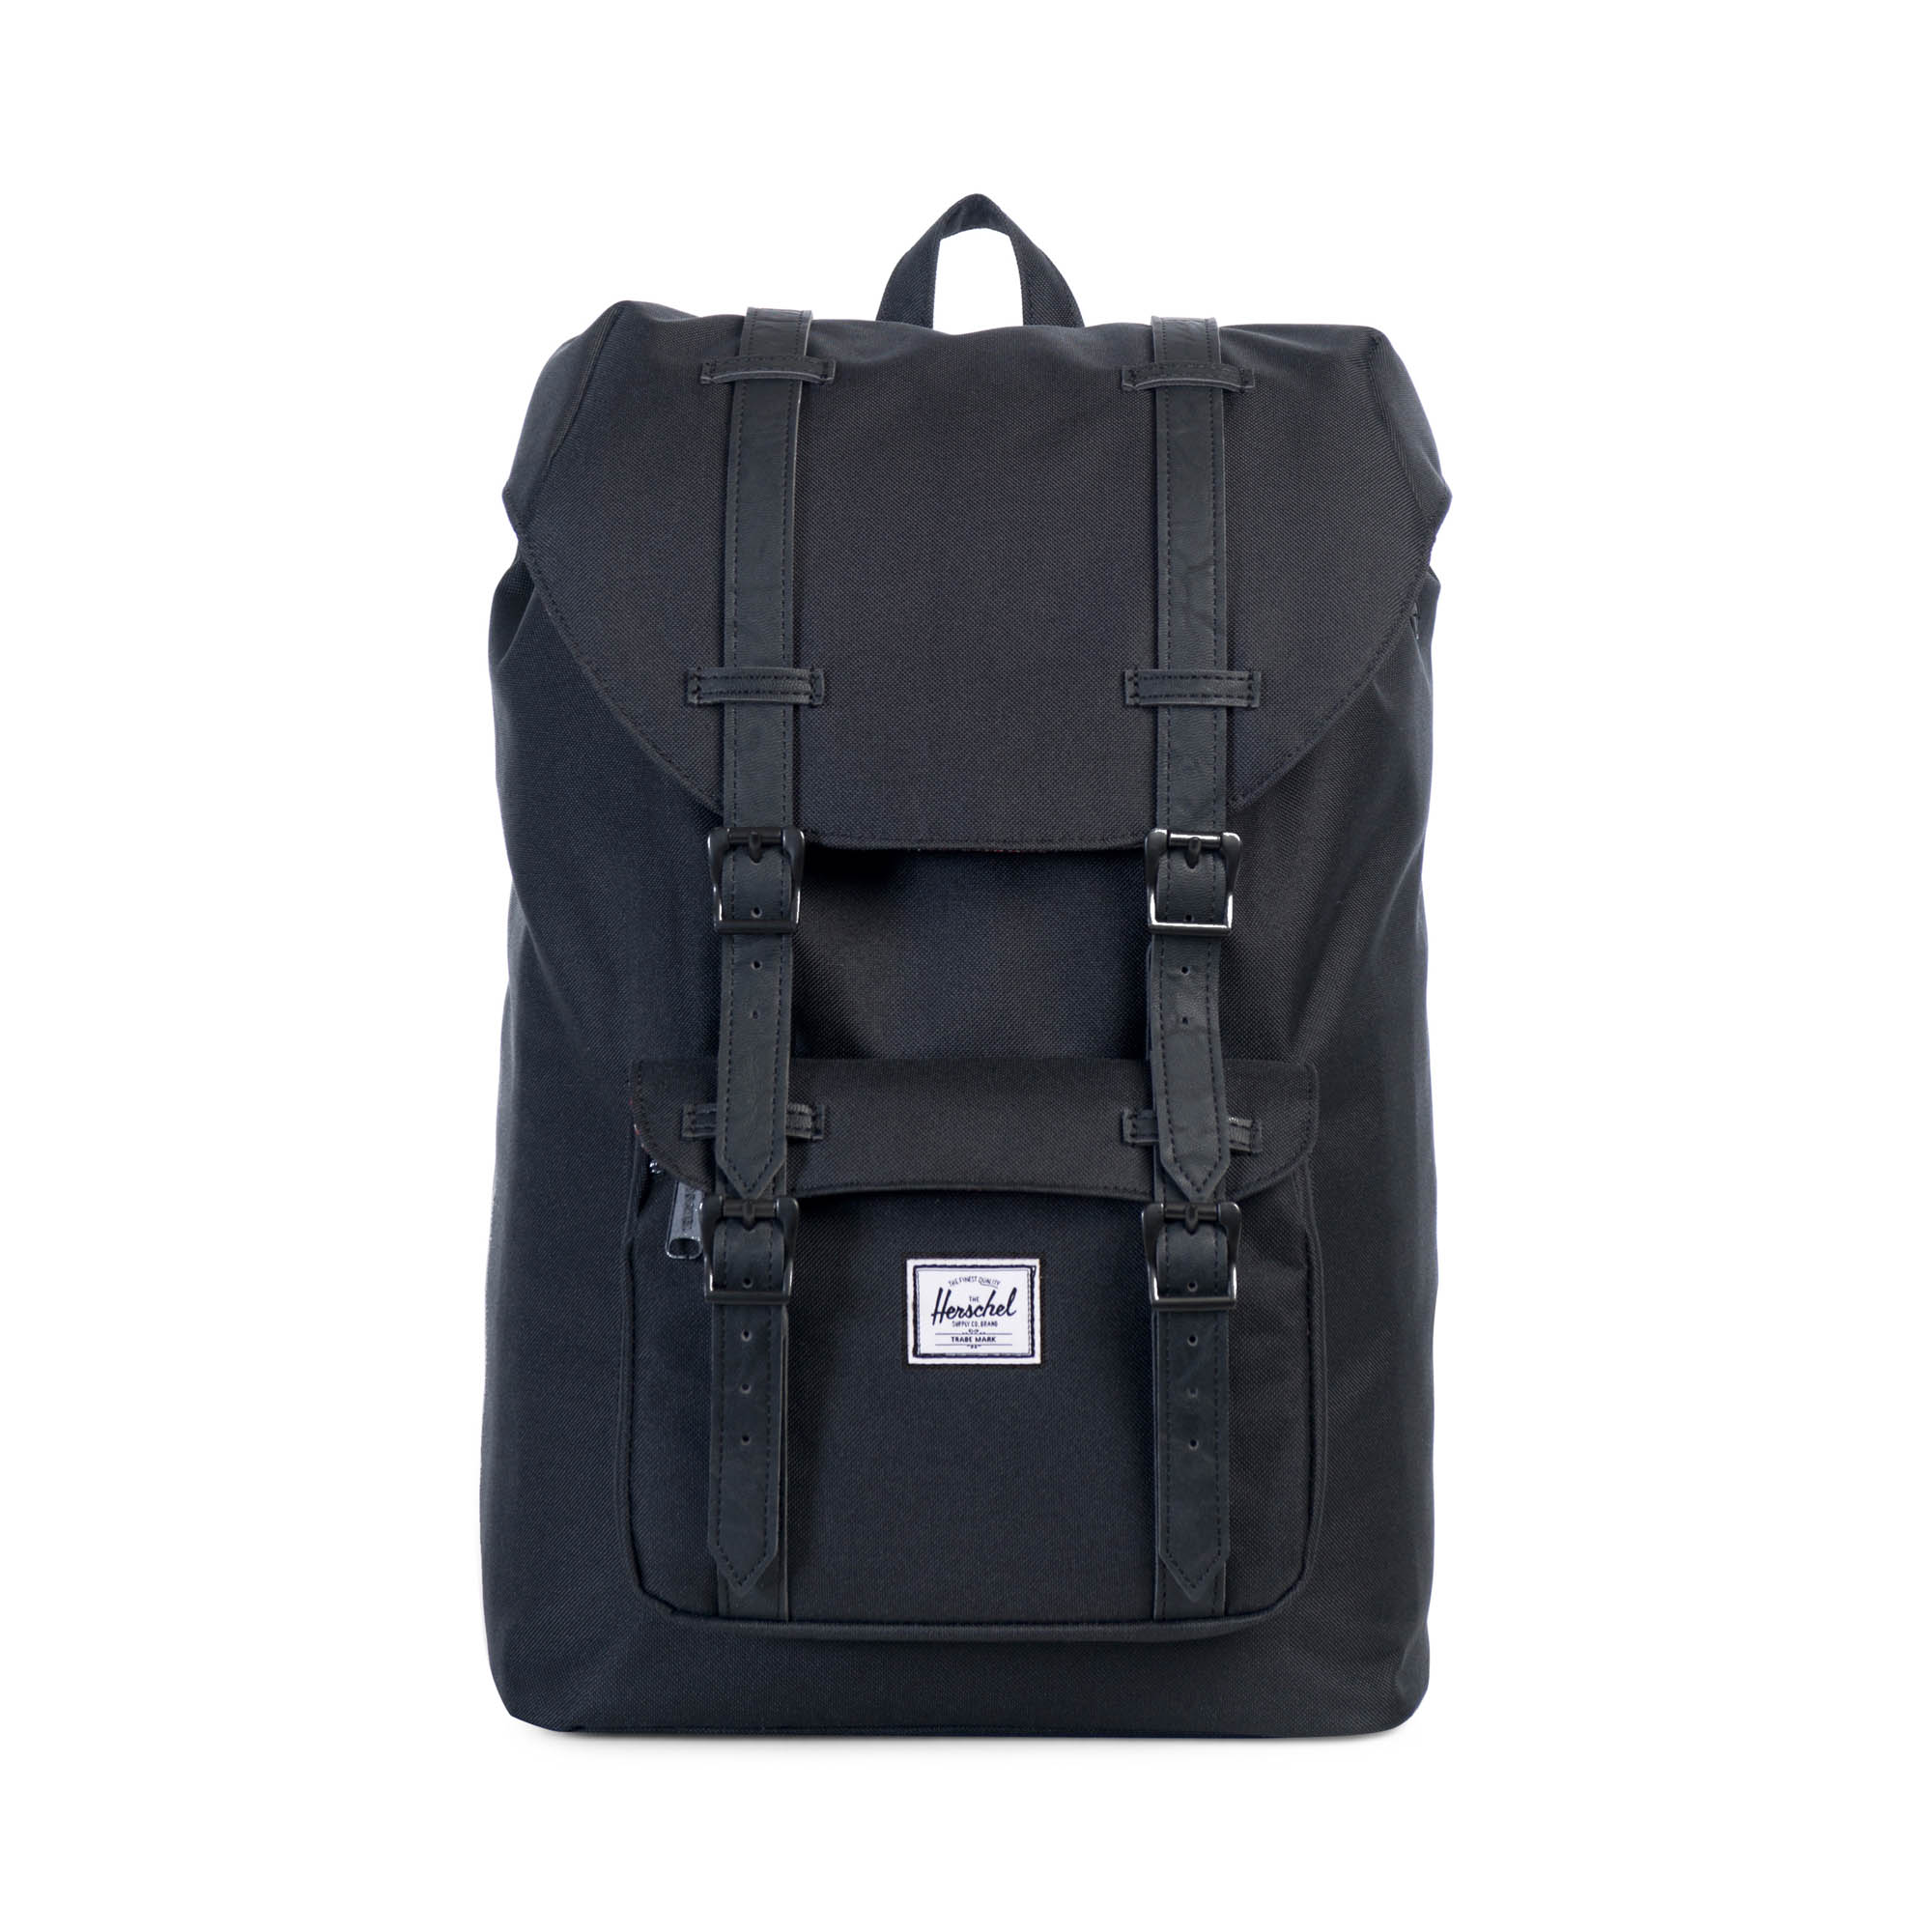 3ac307121b92 Herschel Little America Backpack Mid-Volume